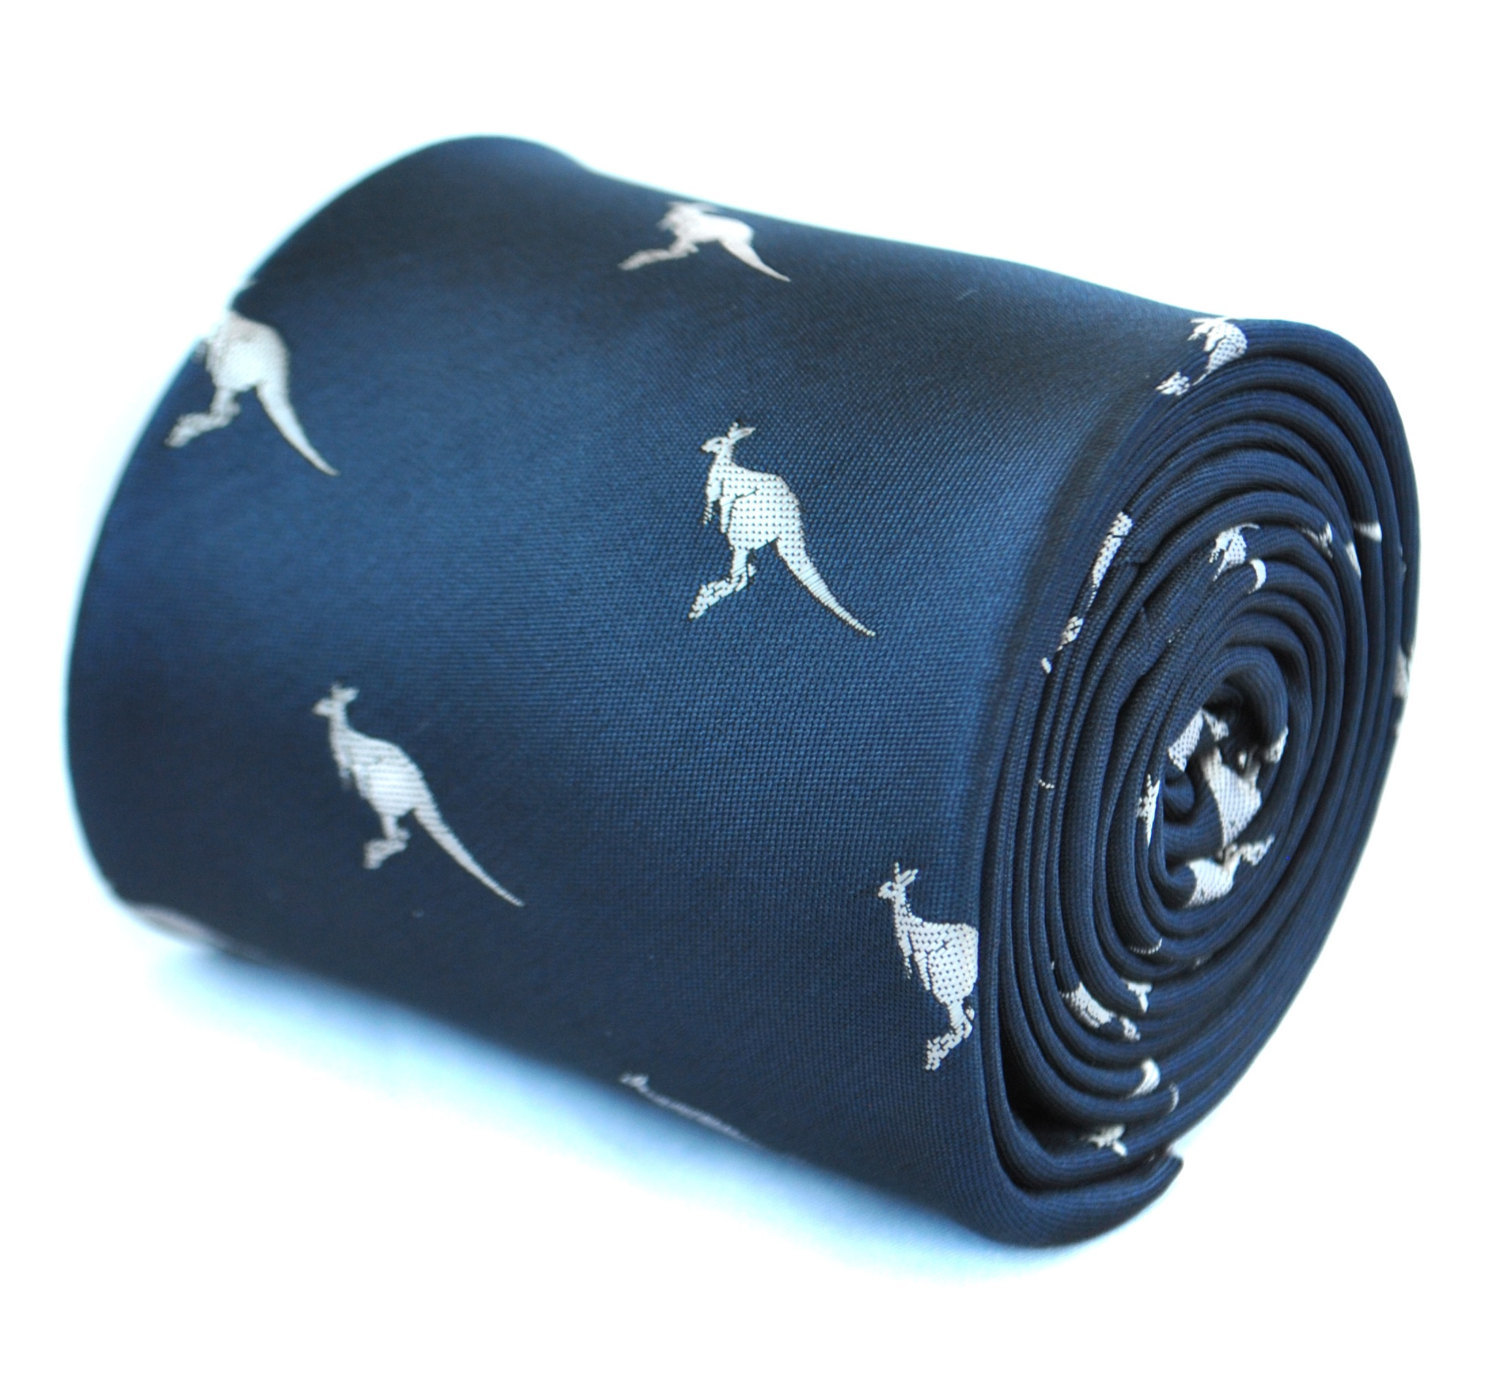 navy blue tie with kangaroo design with signature floral design to rear by Frede